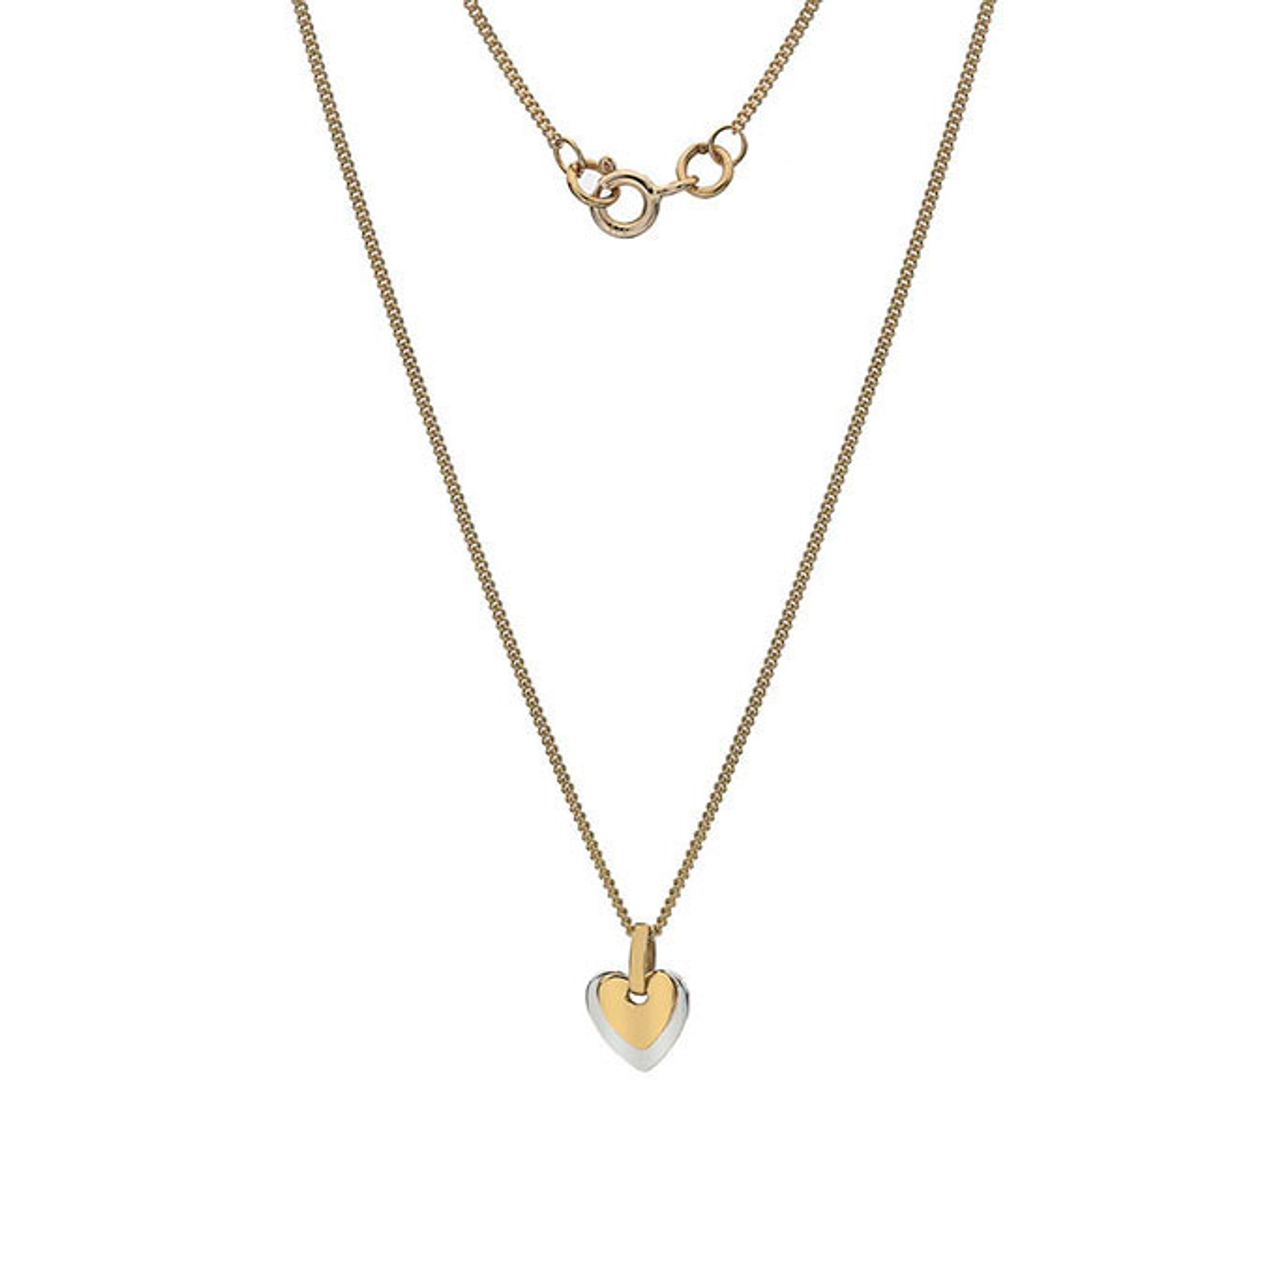 9ct Yellow & White Gold Heart Pendant on Chain